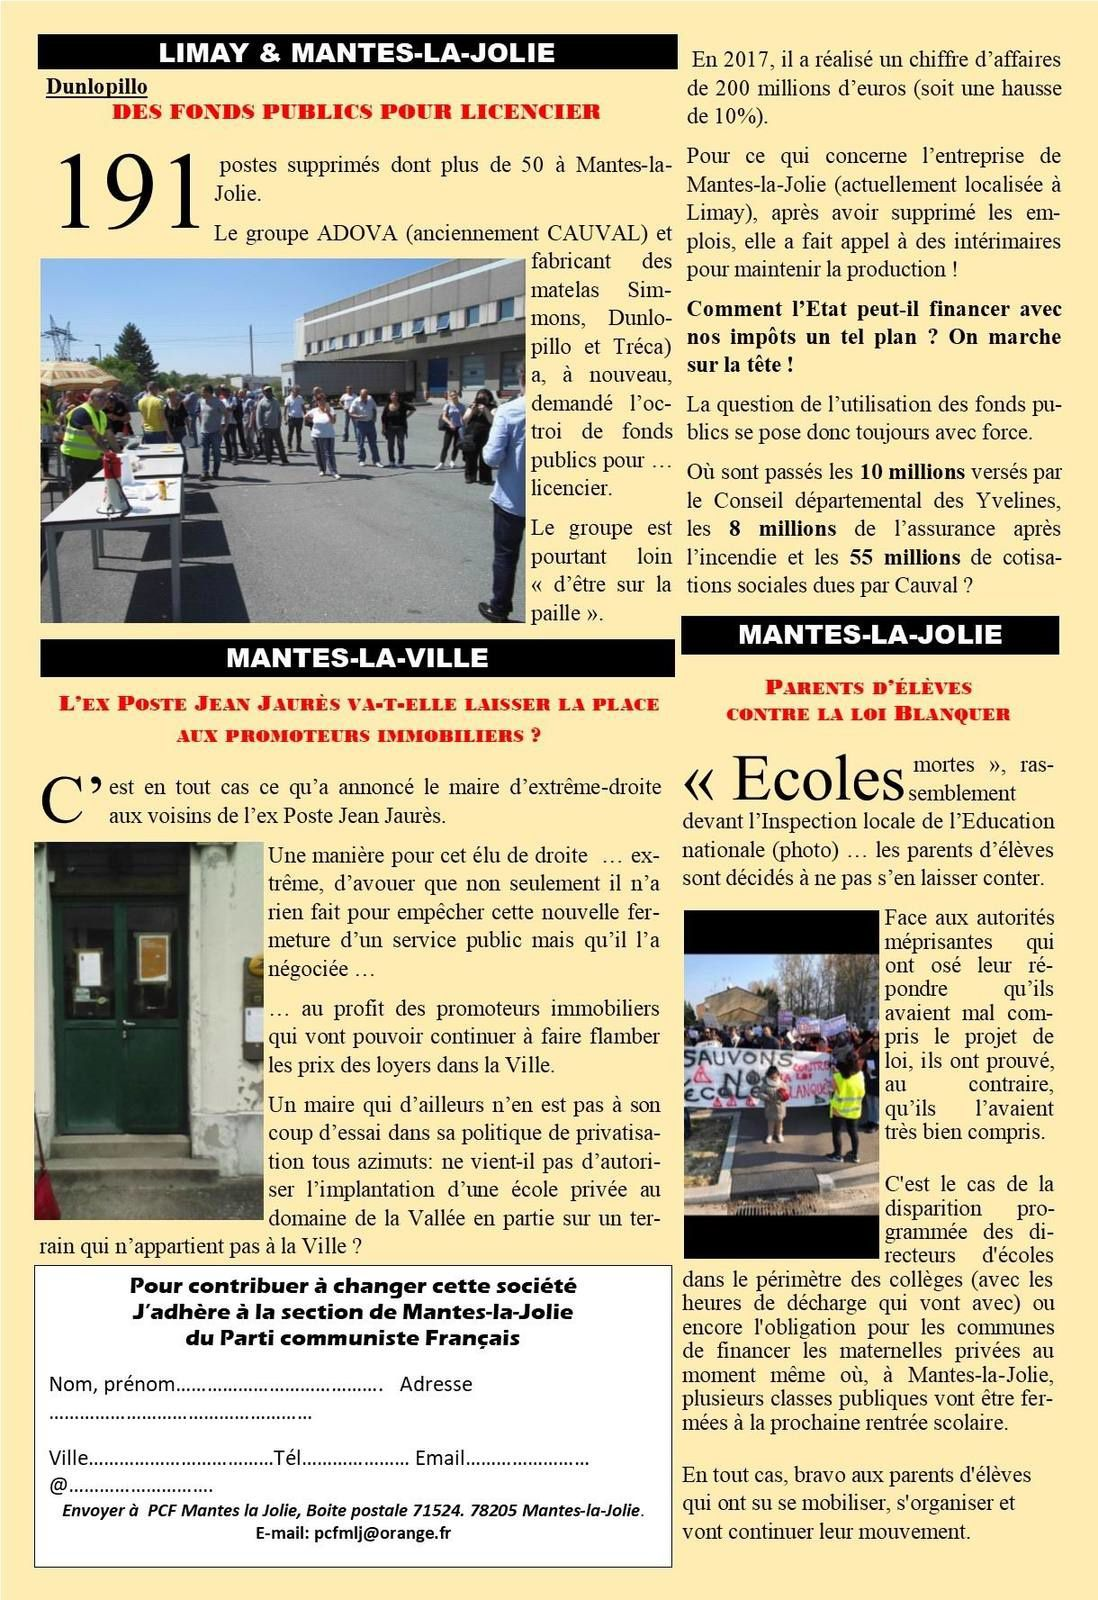 Mantes-la-Jolie. L'opinion des communistes (mai 2019)